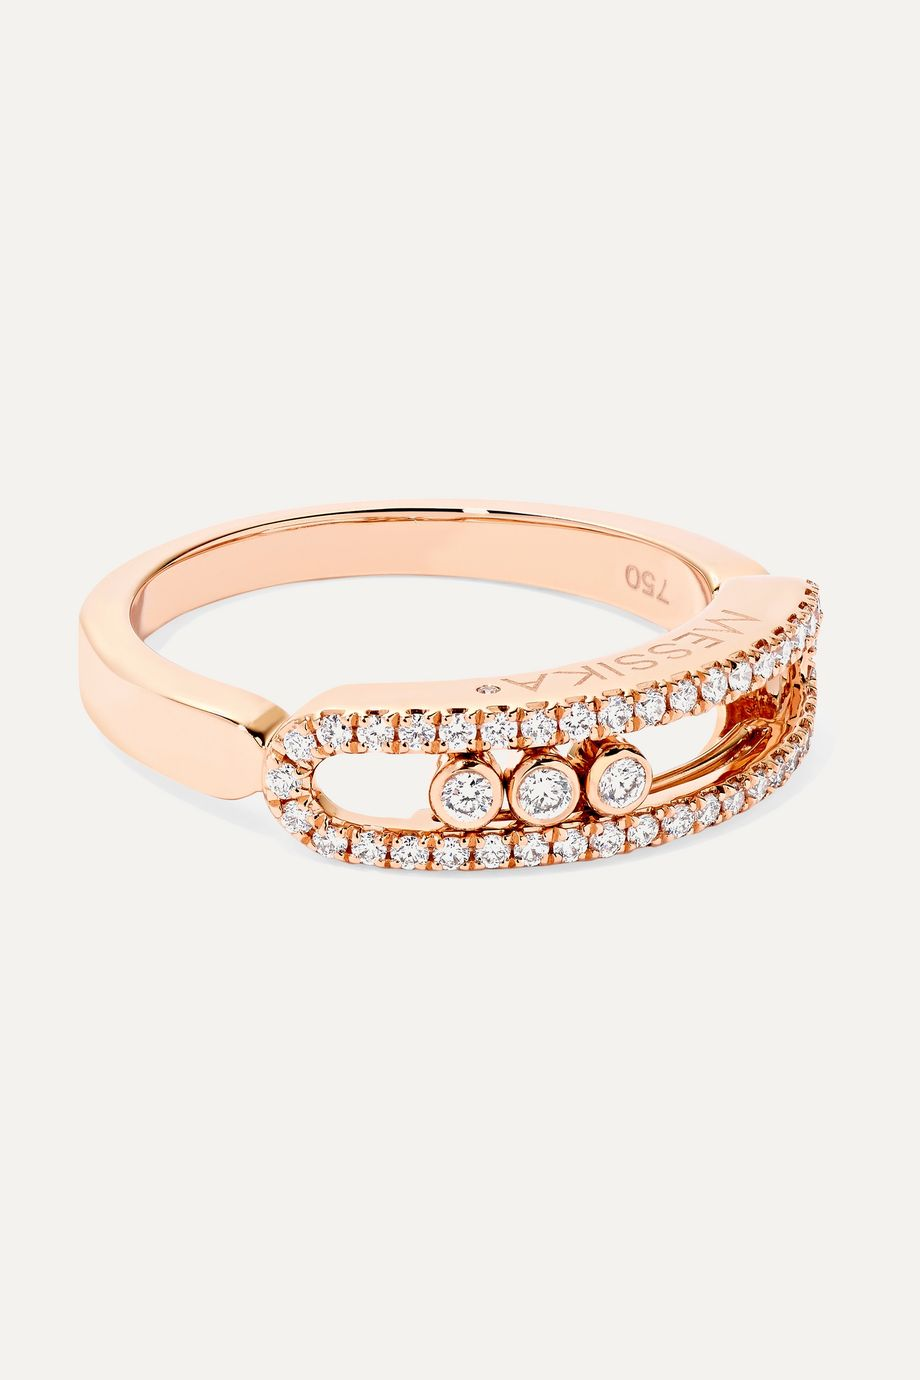 Messika Baby Move 18-karat rose gold diamond ring